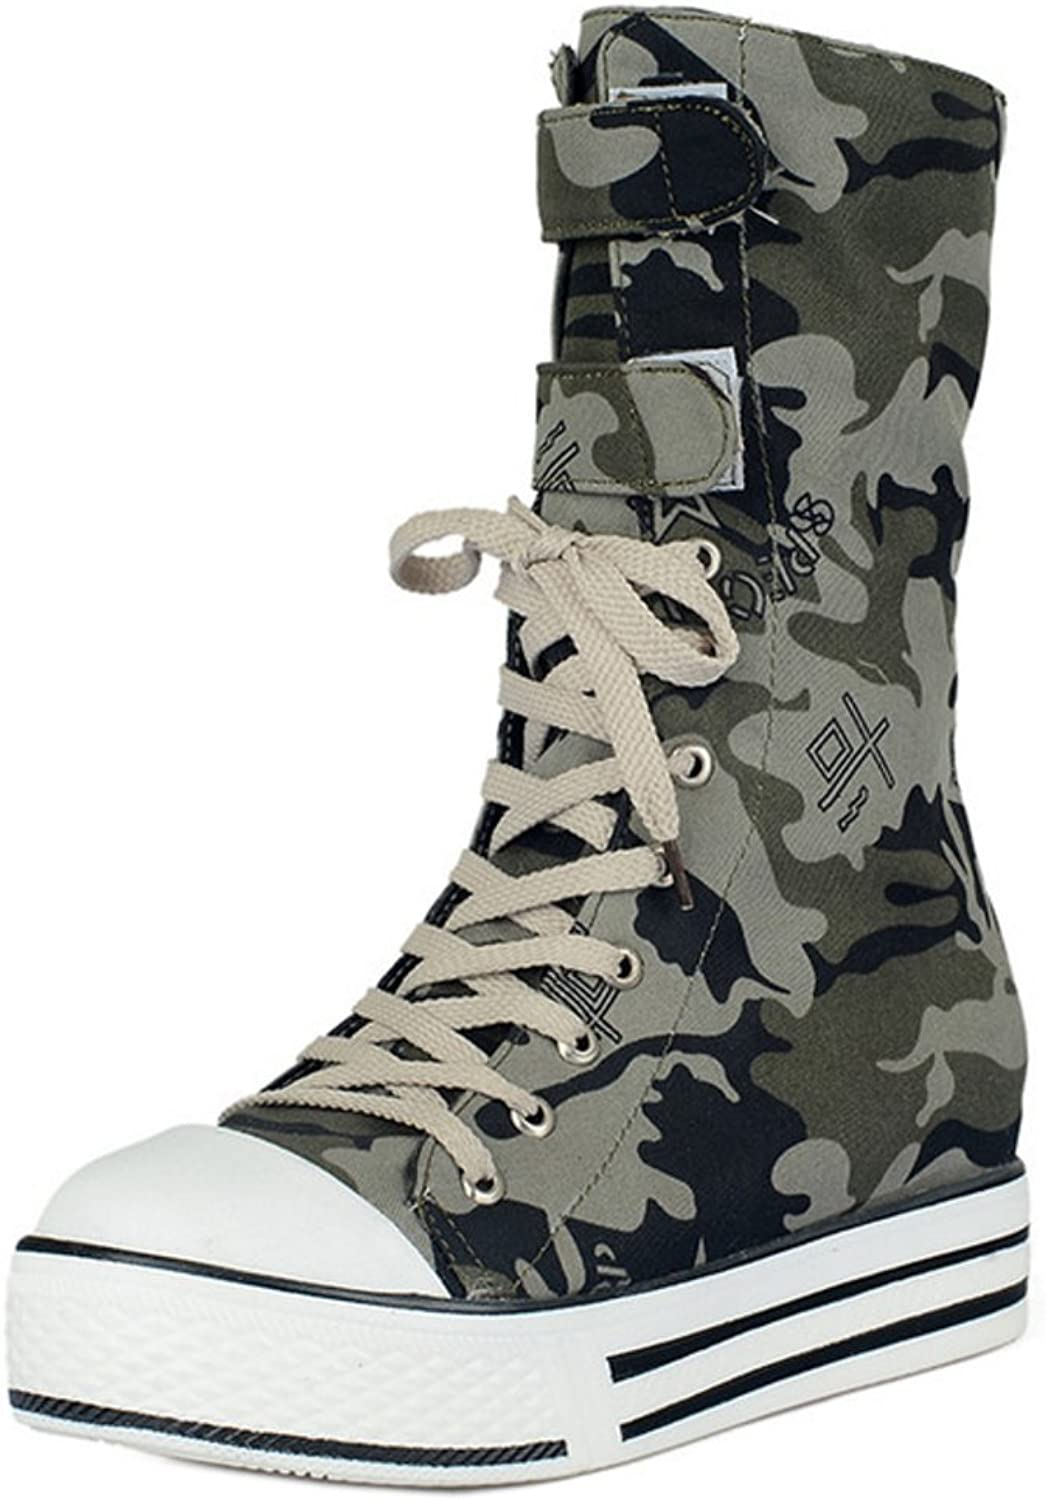 TAOFFEN Women Fashion Lace Up Platform Short Boots Army Green Height shoes